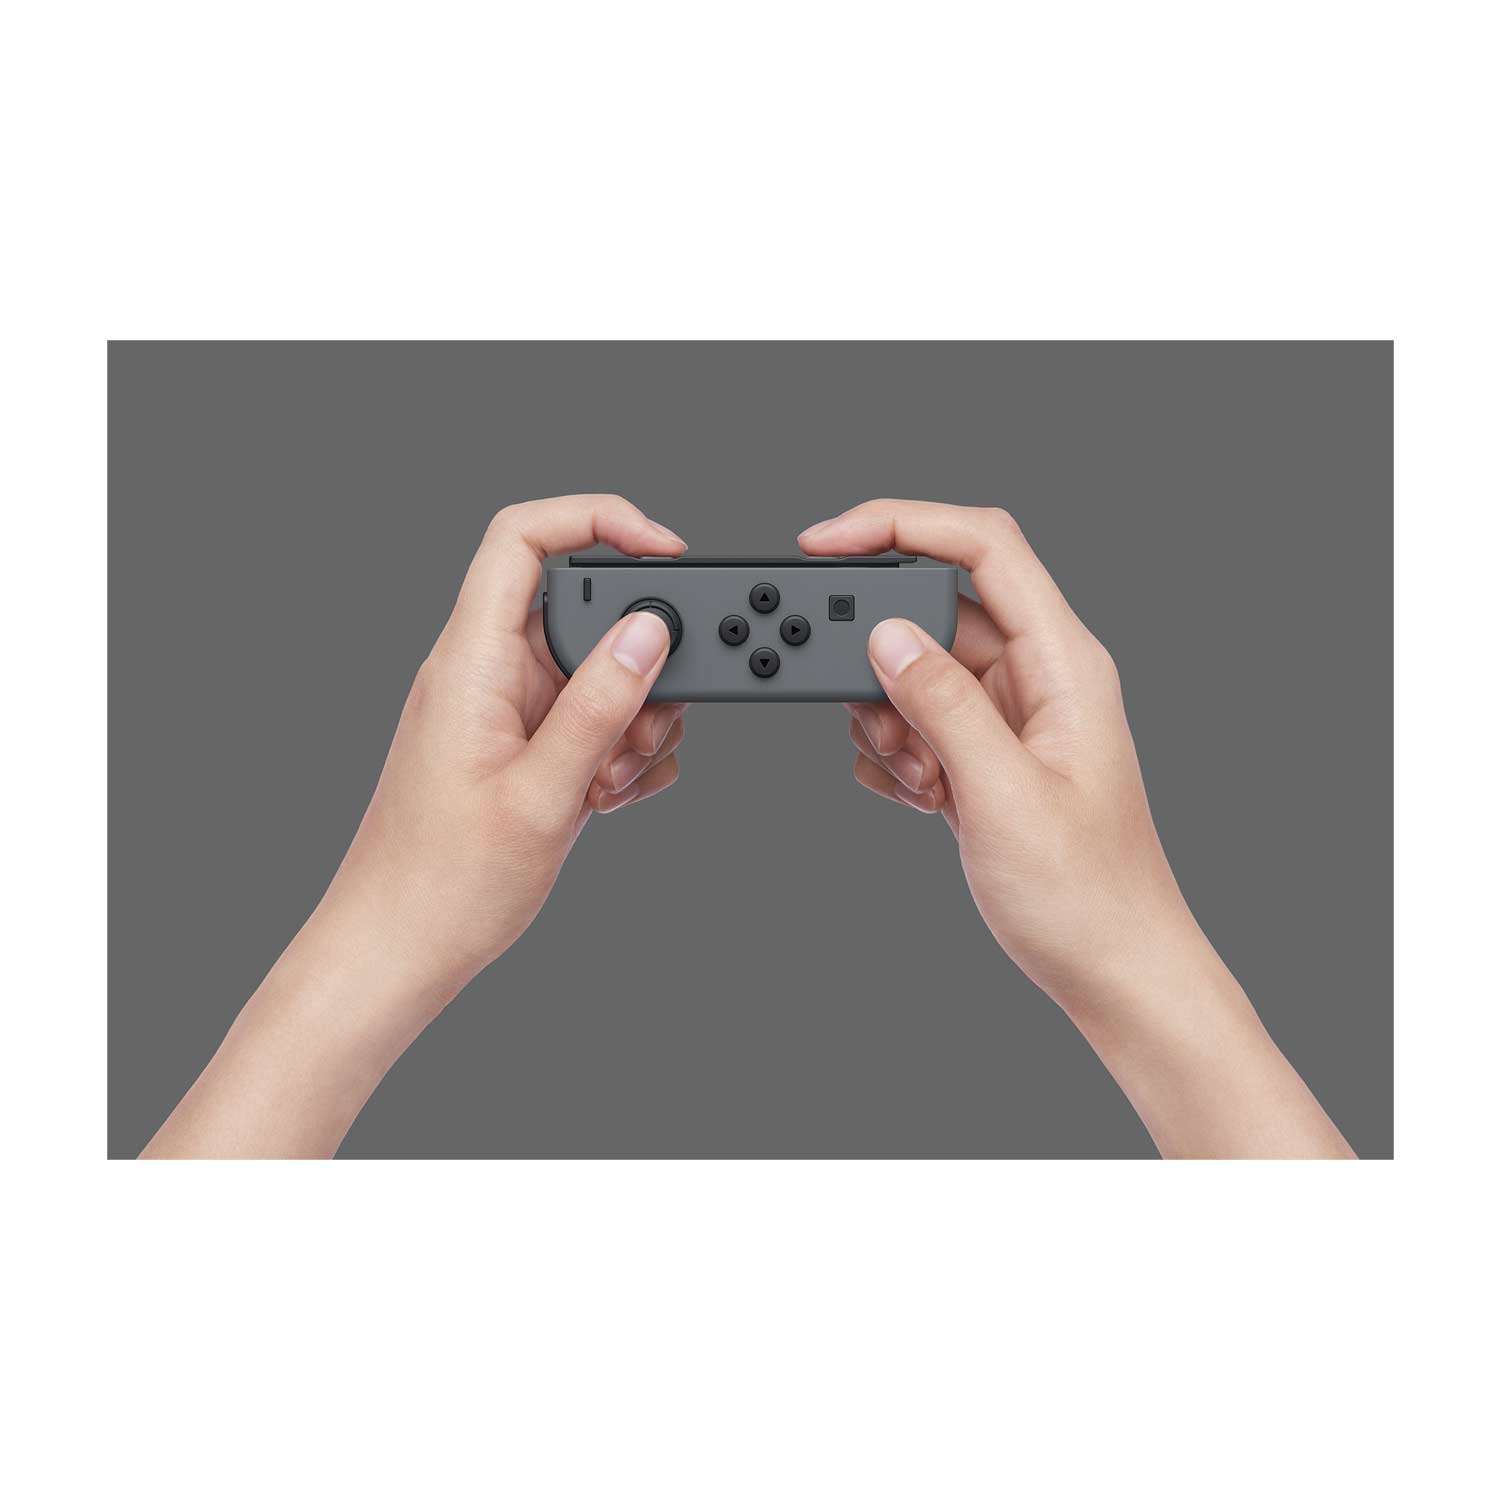 ... Image for Nintendo Switch Game System with Gray Joy-Cons from Pokemon Center. _5_3074457345618259663_3074457345618262055_3074457345618268804